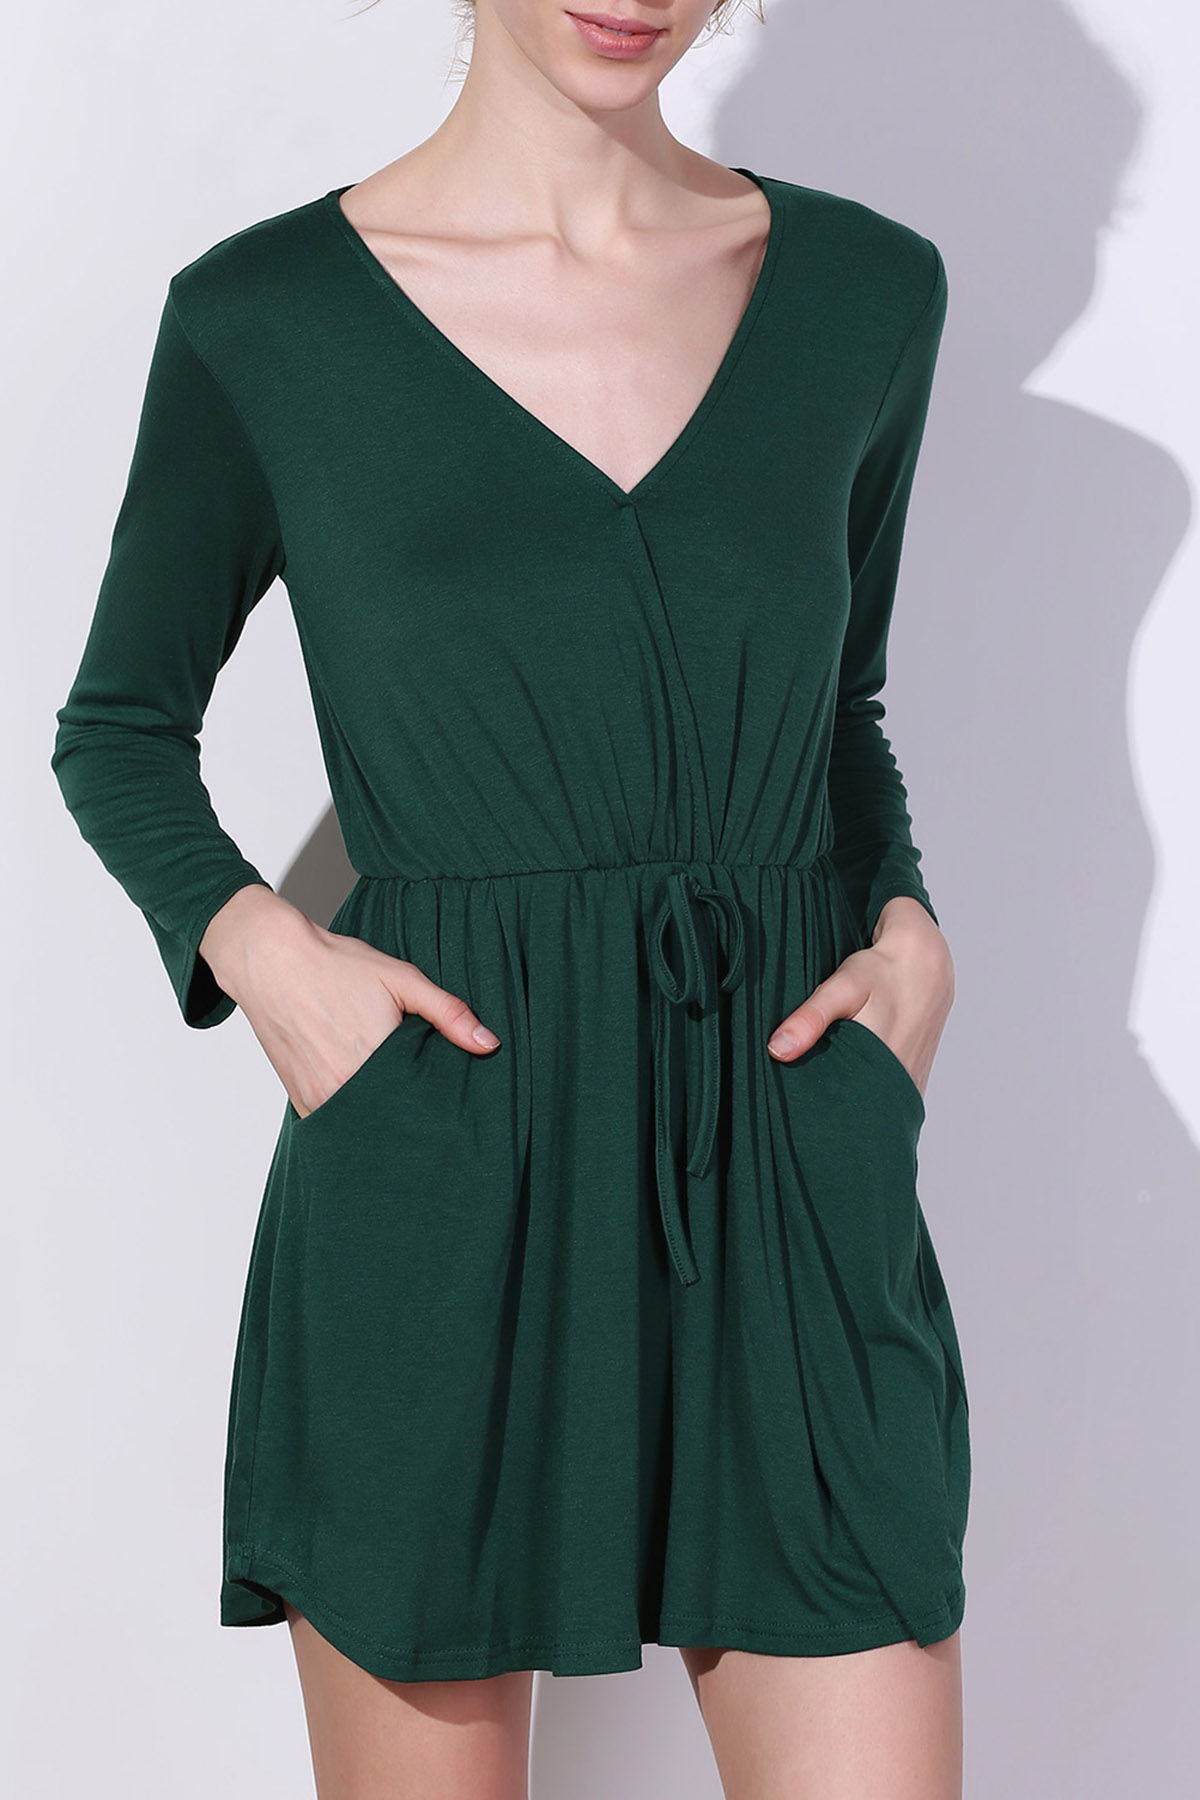 Green V Neck Long Sleeve Dress - GREEN S